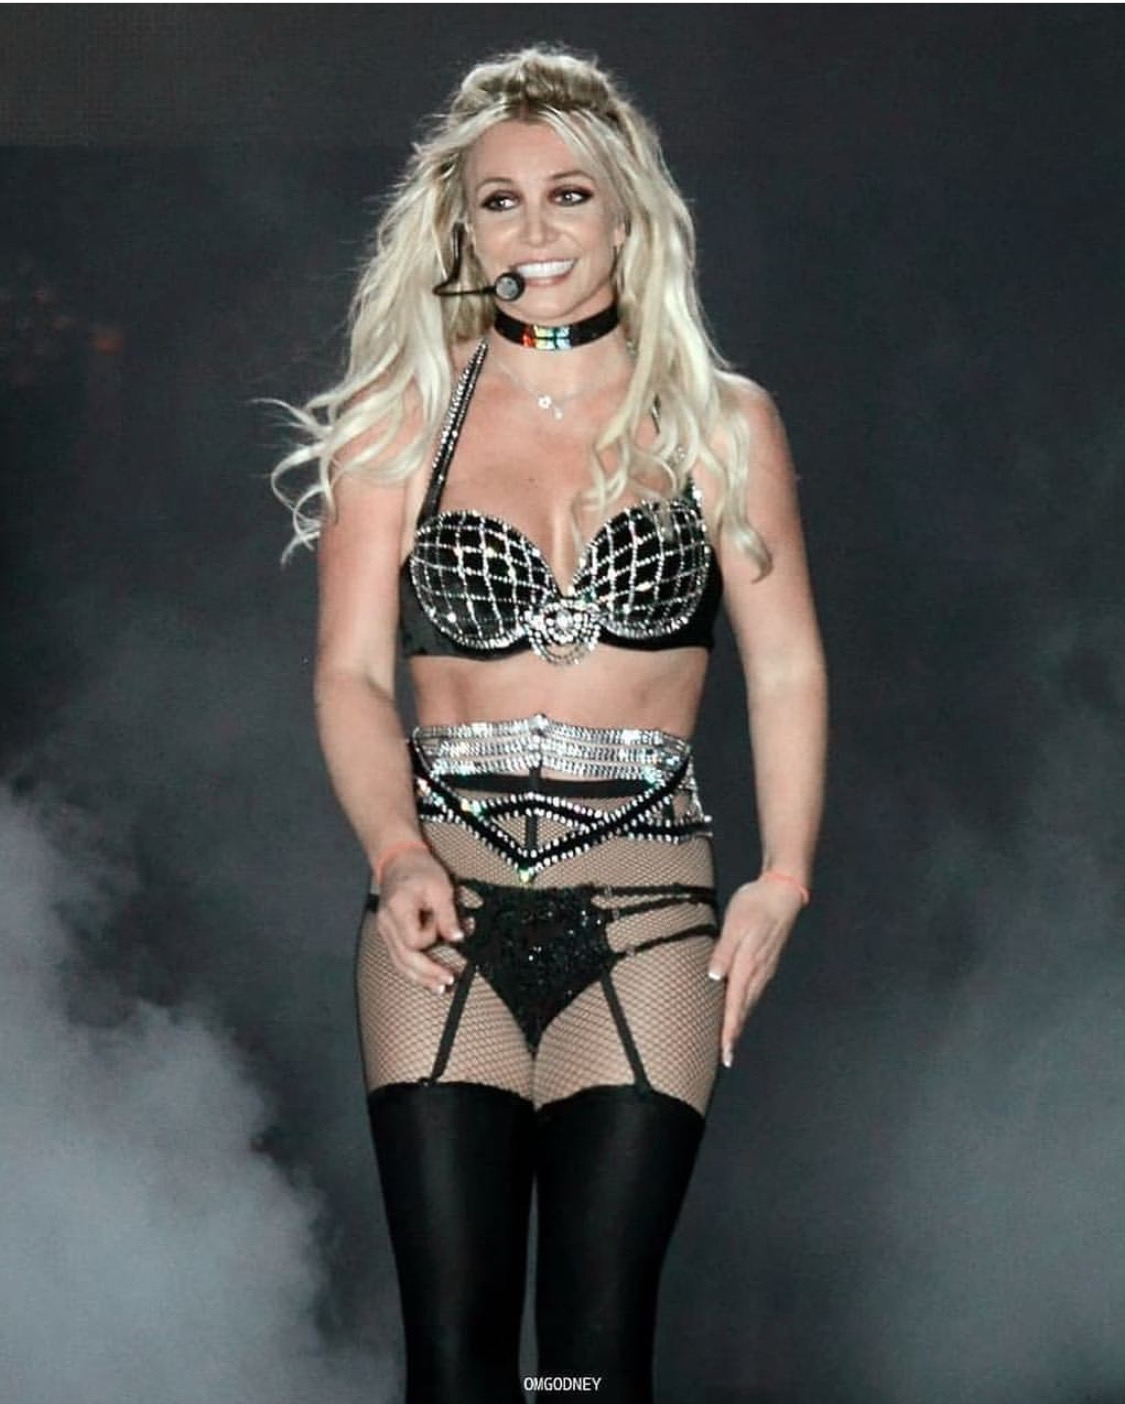 It's official Britney Spears can no longer be called a performer